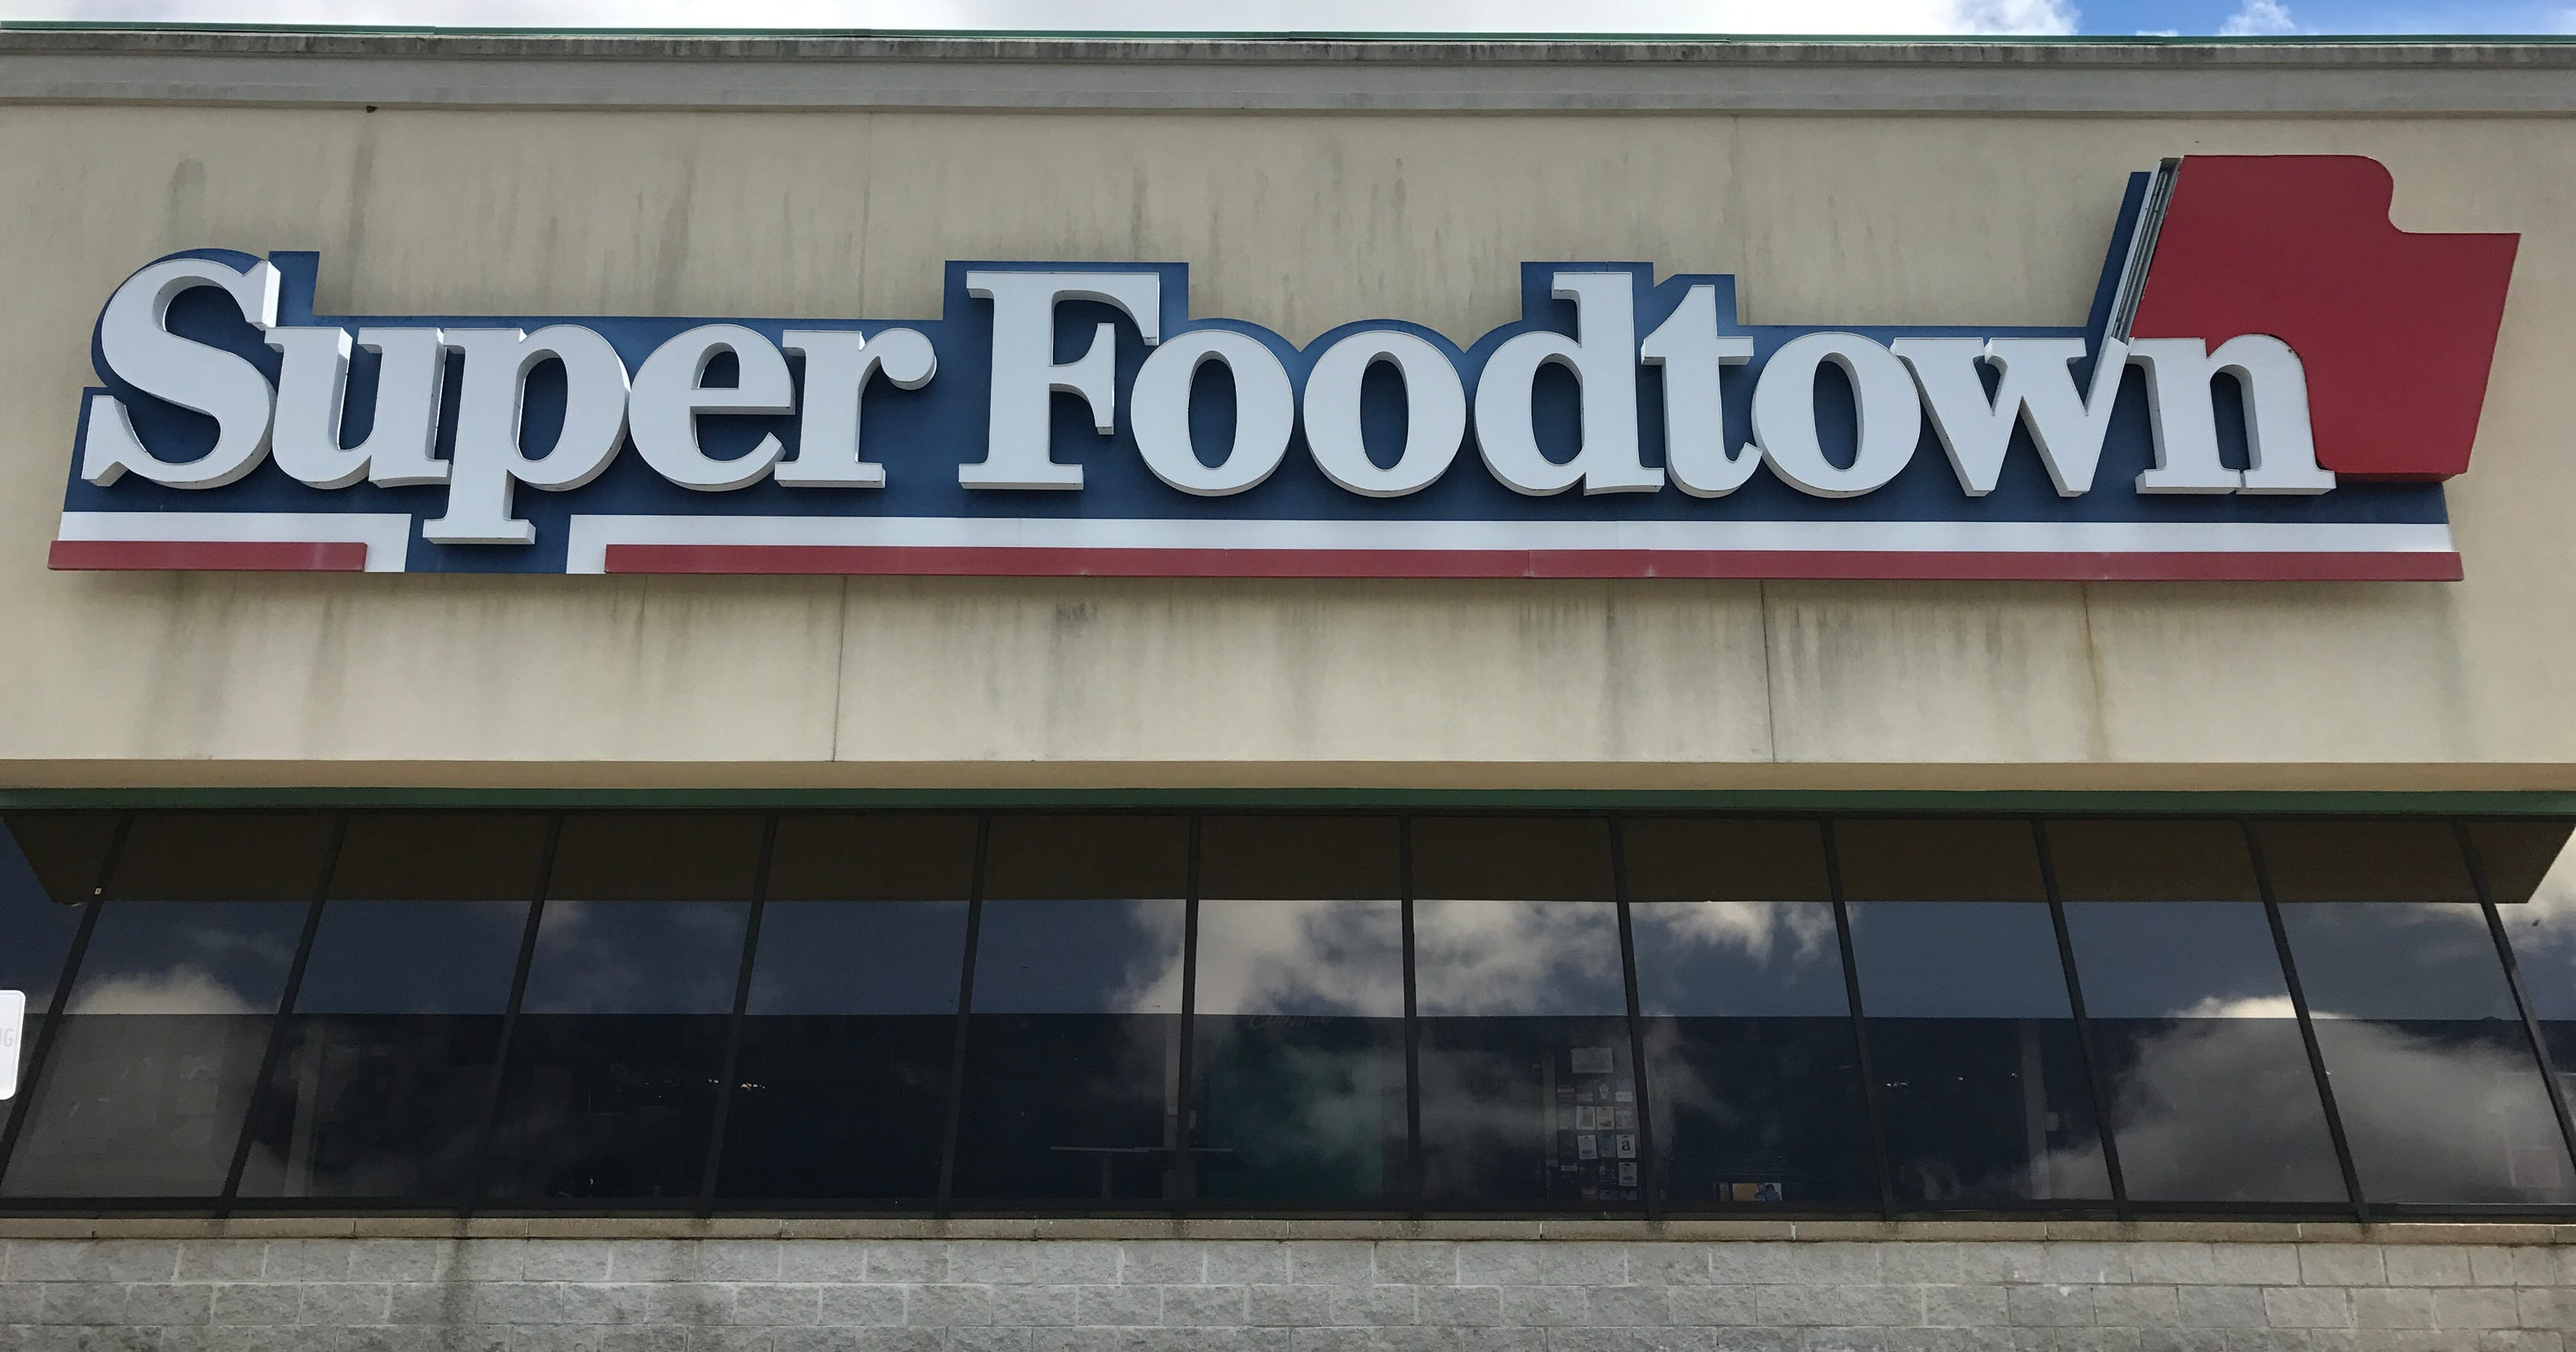 Super Foodtown True Value May Replace Pathmark In Middlesex Boro